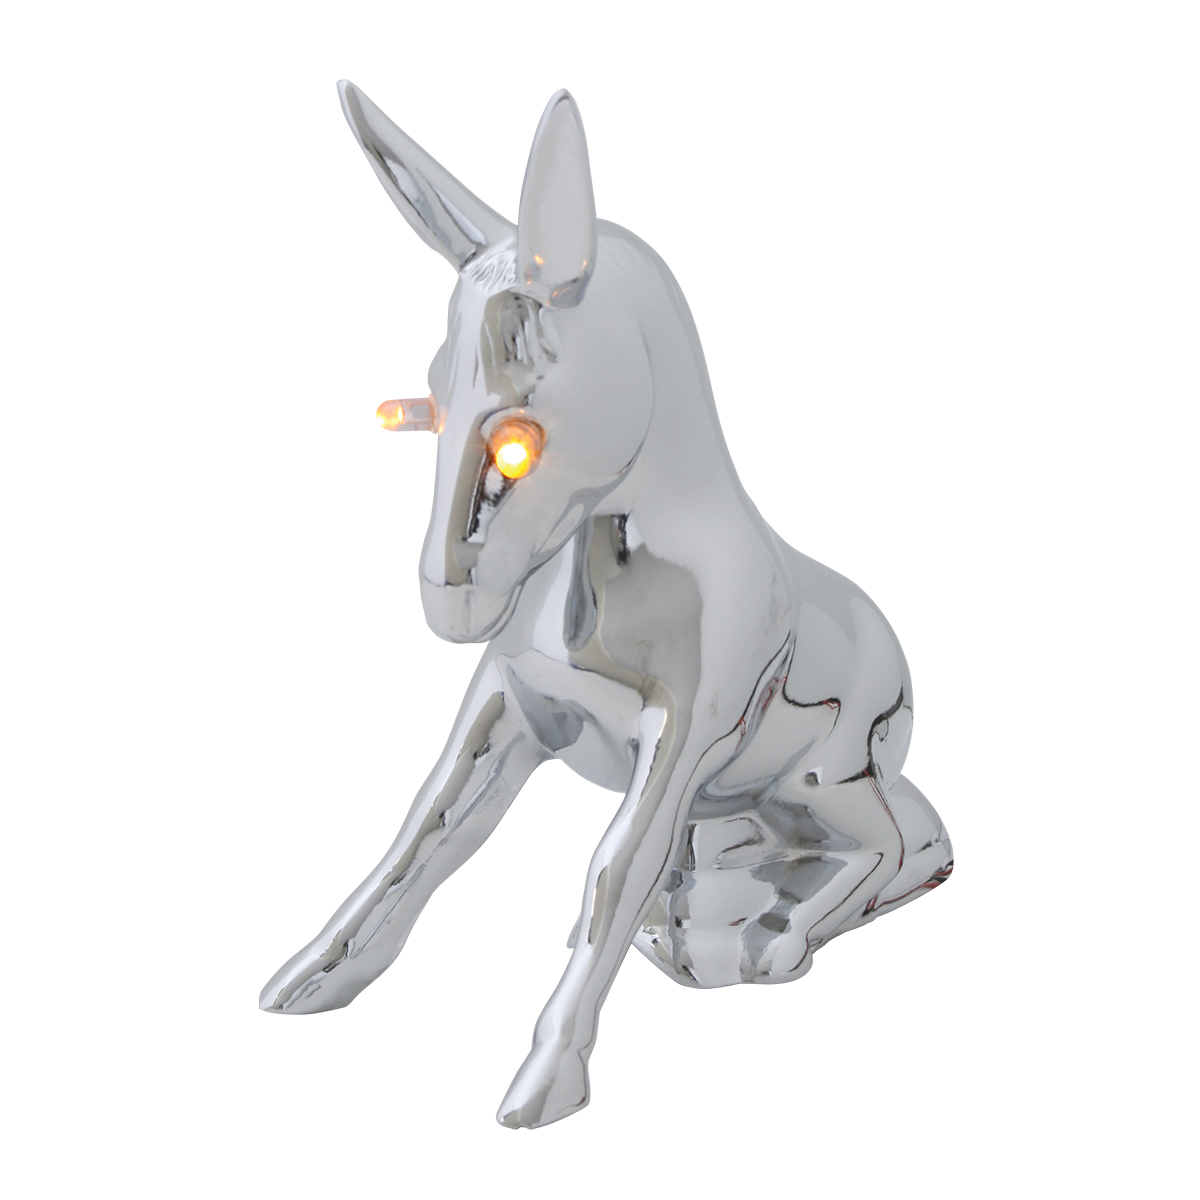 Chrome Die Cast Novelty Donkey w/Illuminated Eyes